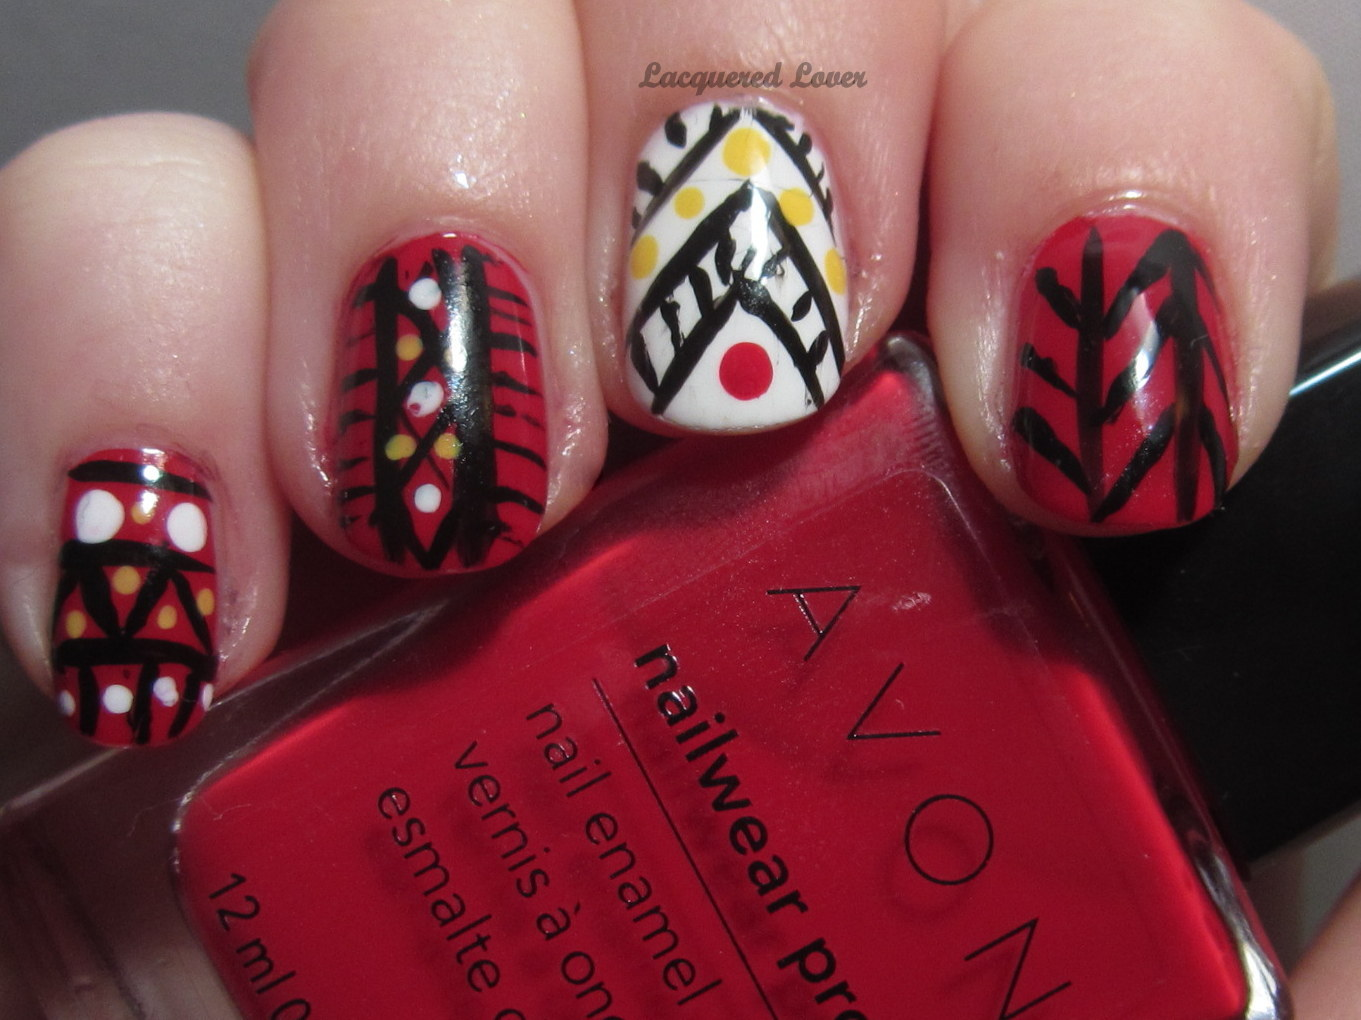 Lacquered Lover: Avon Nail Polish Tribal Nail Art!